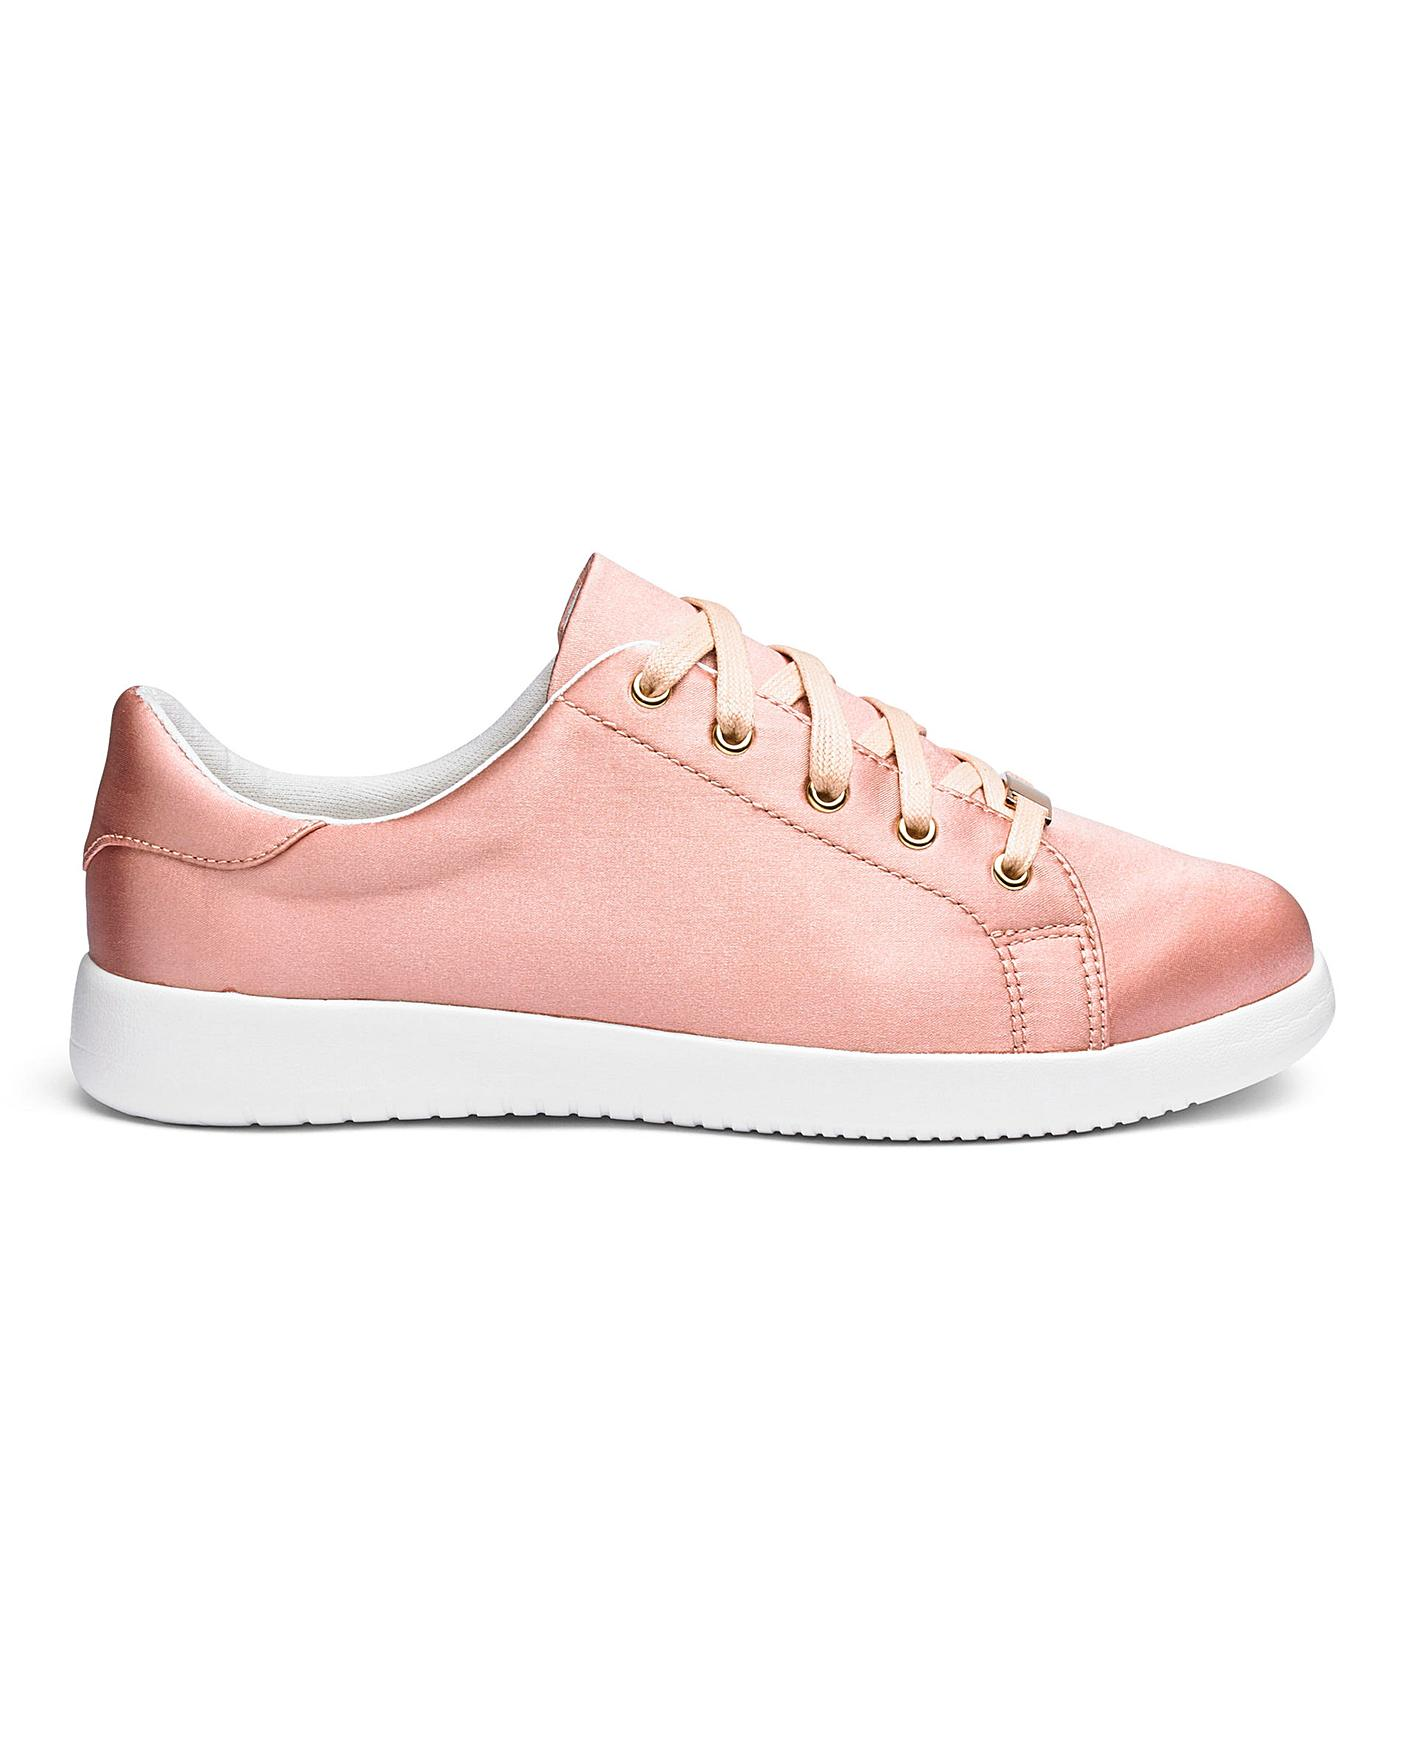 1fa41ddb251 Heavenly Soles Leisure Shoes E Fit